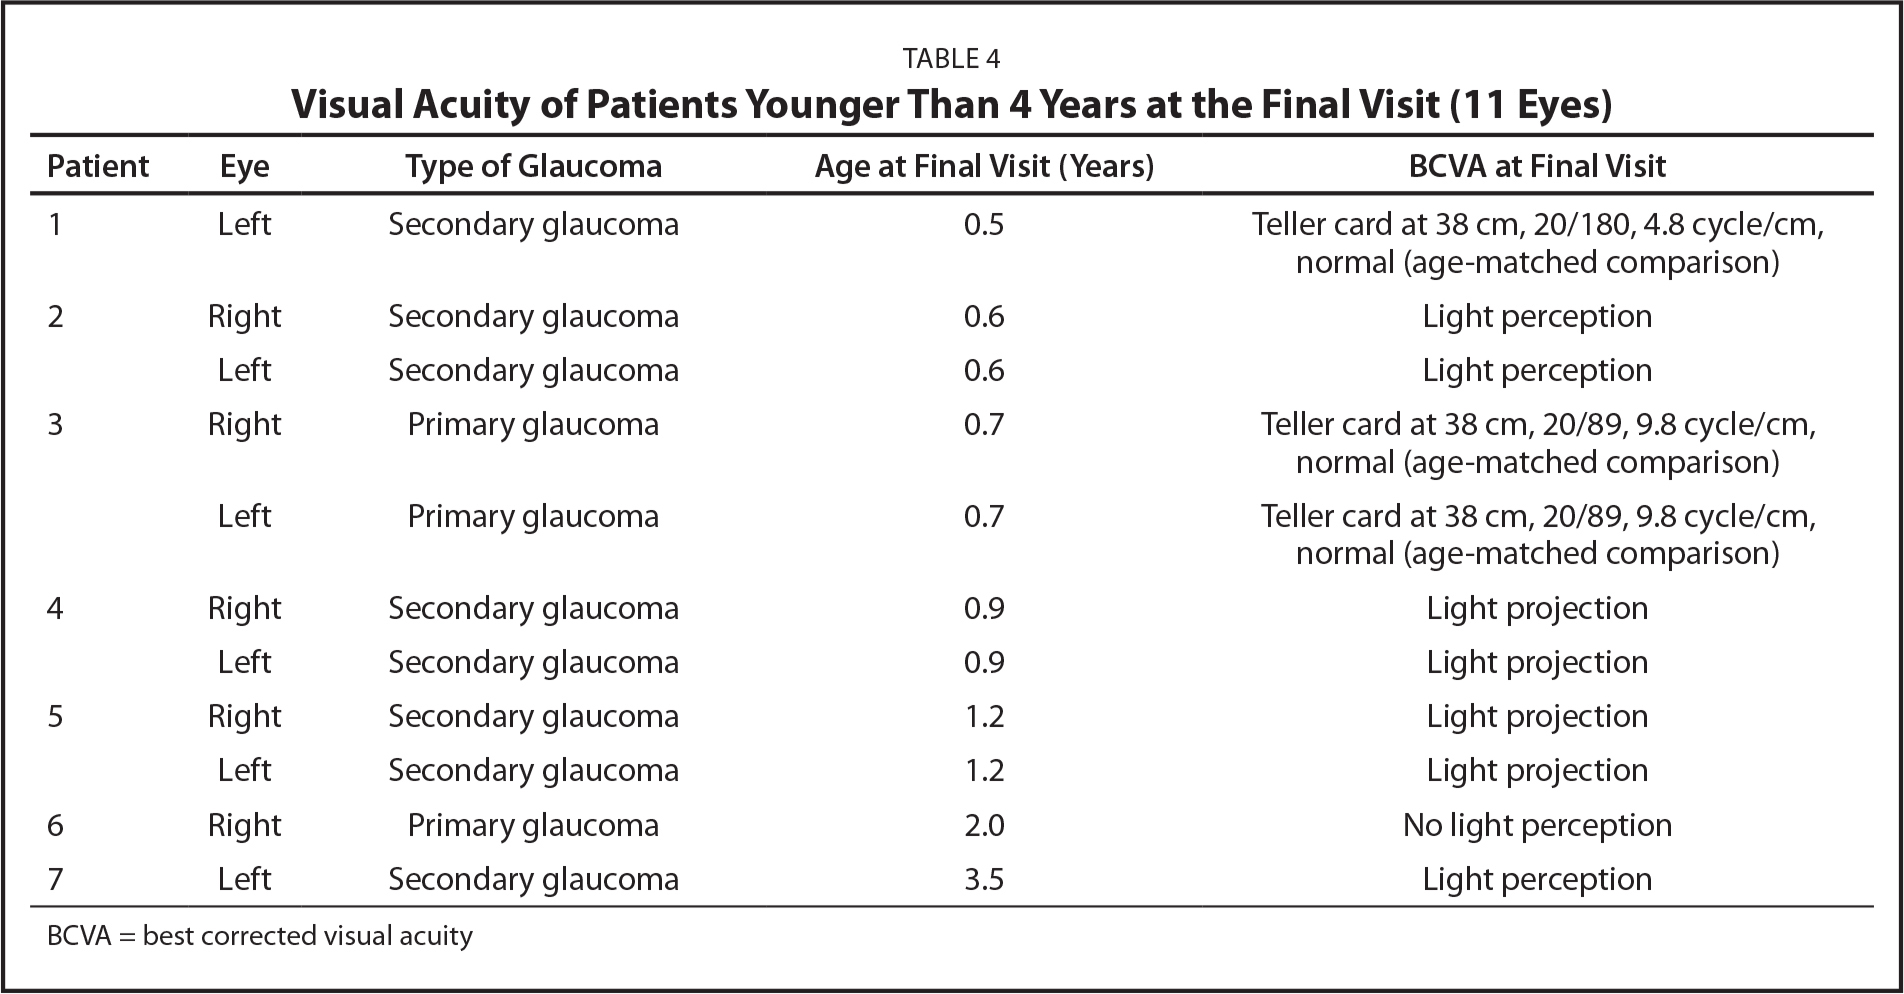 Visual Acuity of Patients Younger Than 4 Years at the Final Visit (11 Eyes)